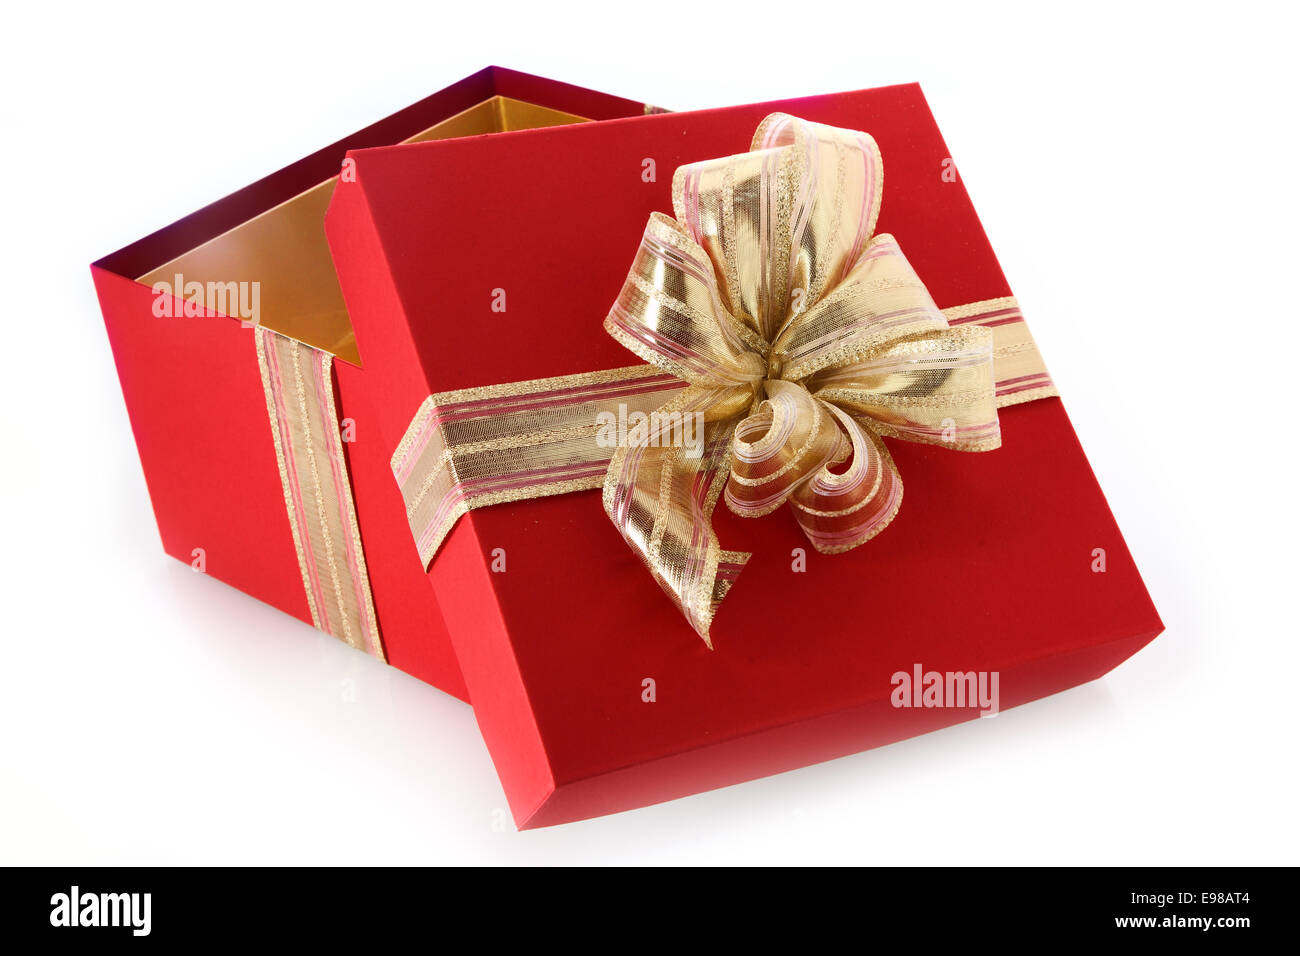 open gift box with tilted lid and decorative gold ribbon and bow for celebrating christmas valentines birthday or an anniversary close up view on a white